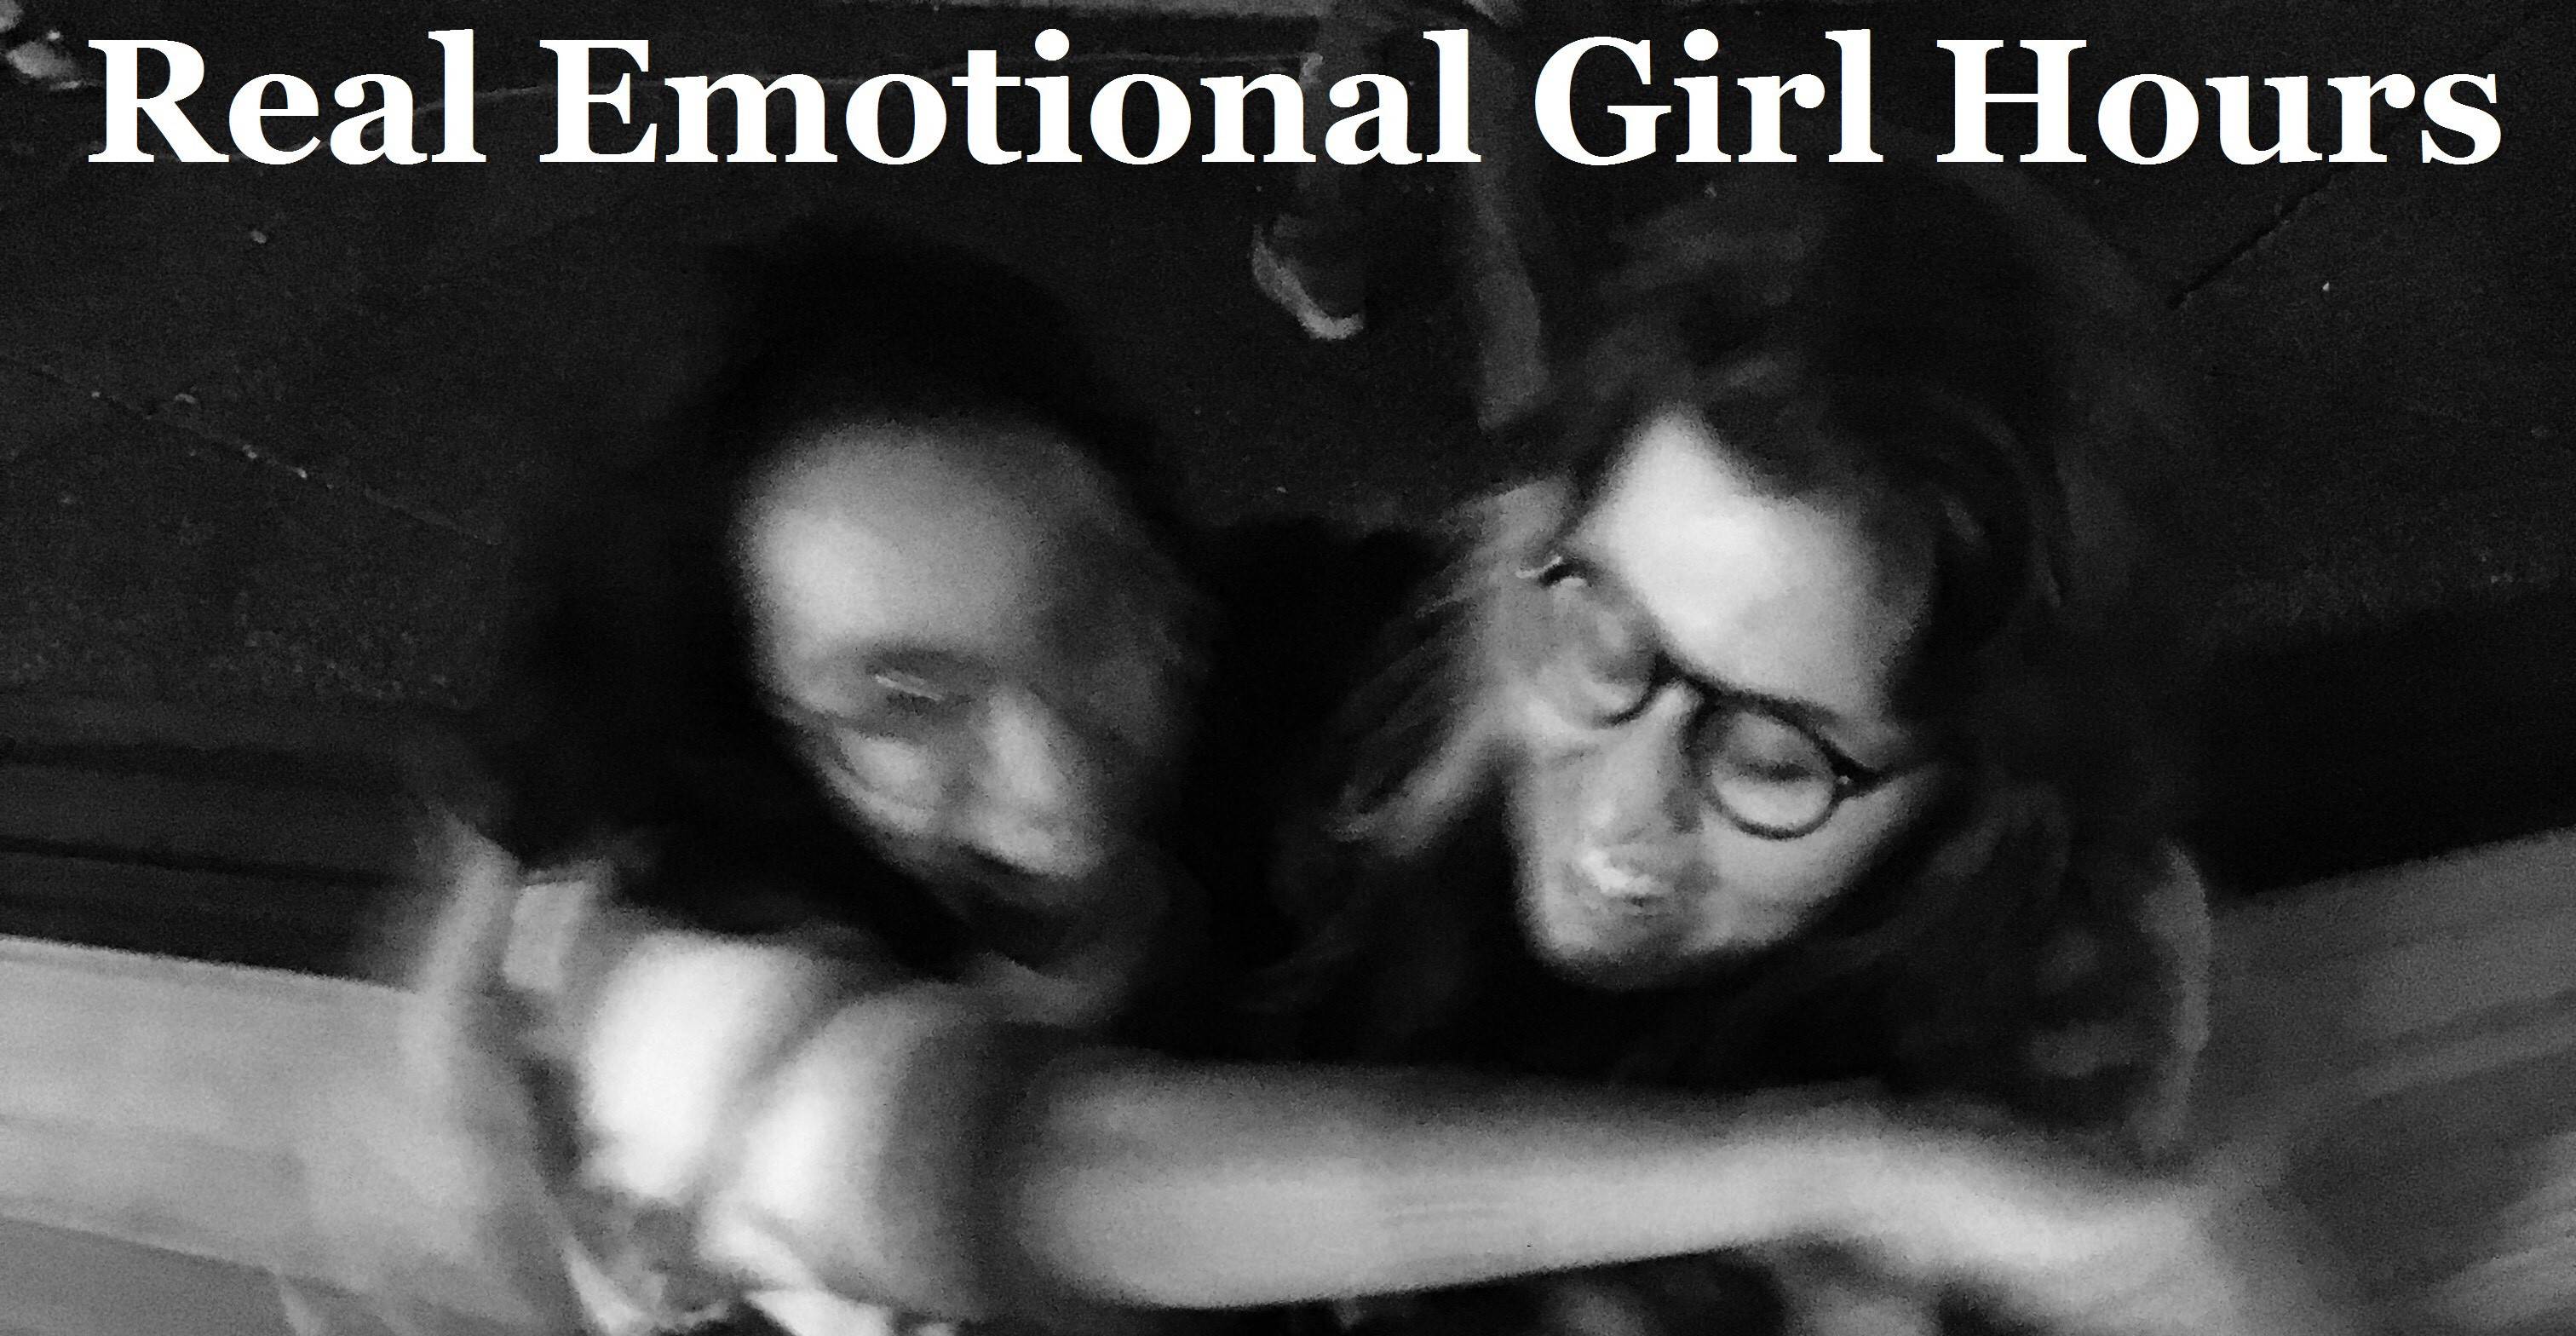 Real Emotional Girl Hours